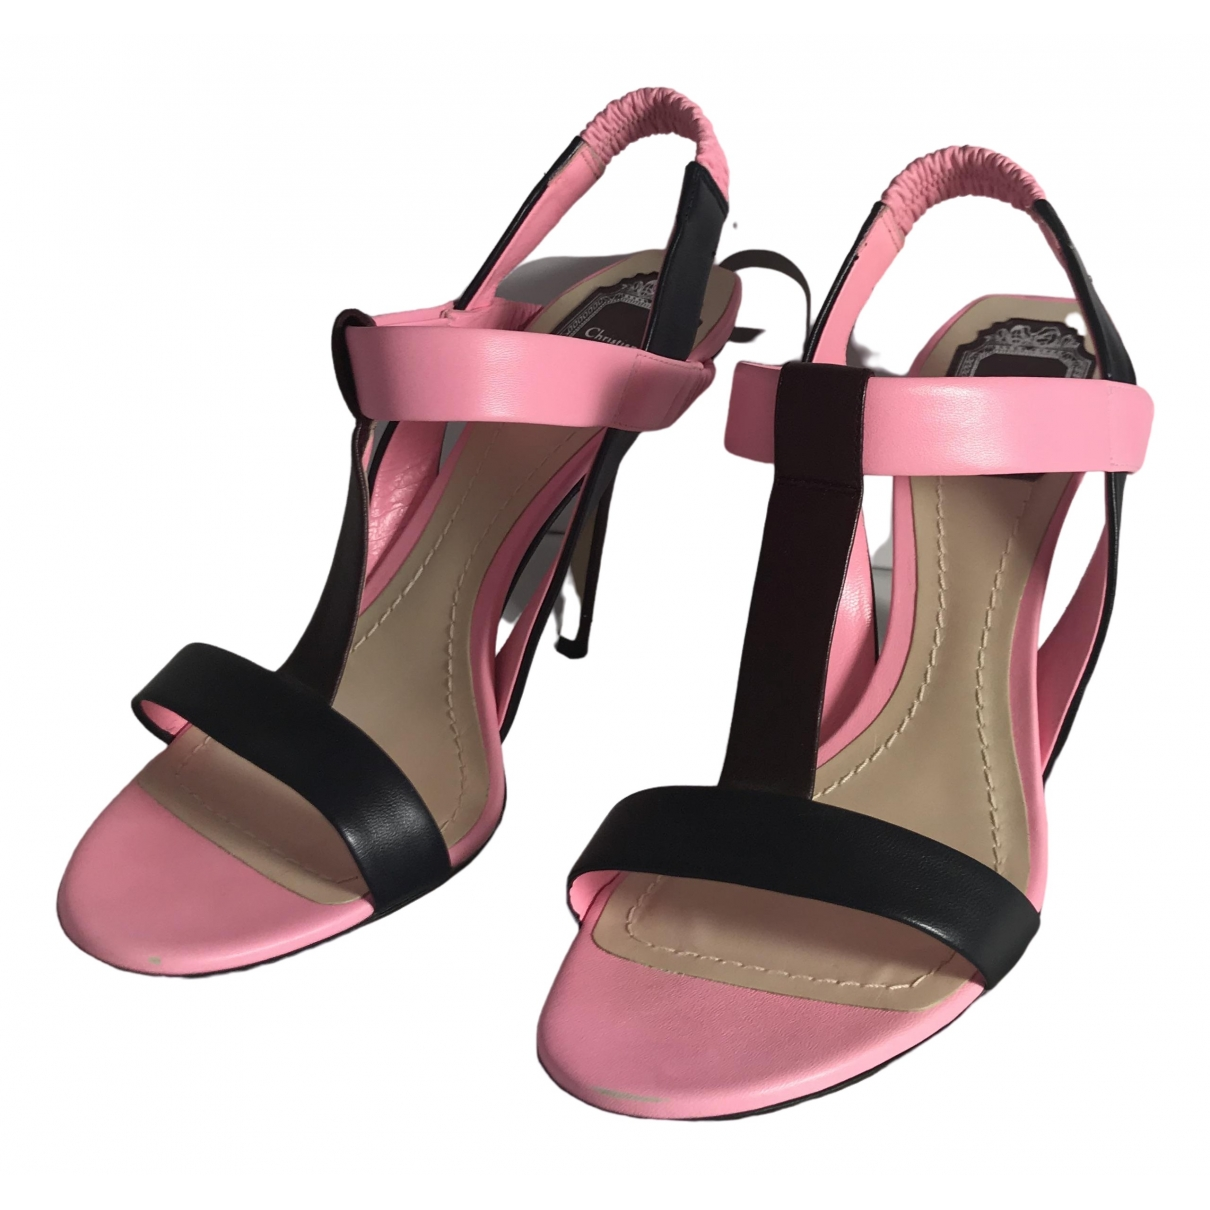 Dior \N Pink Leather Sandals for Women 39 EU